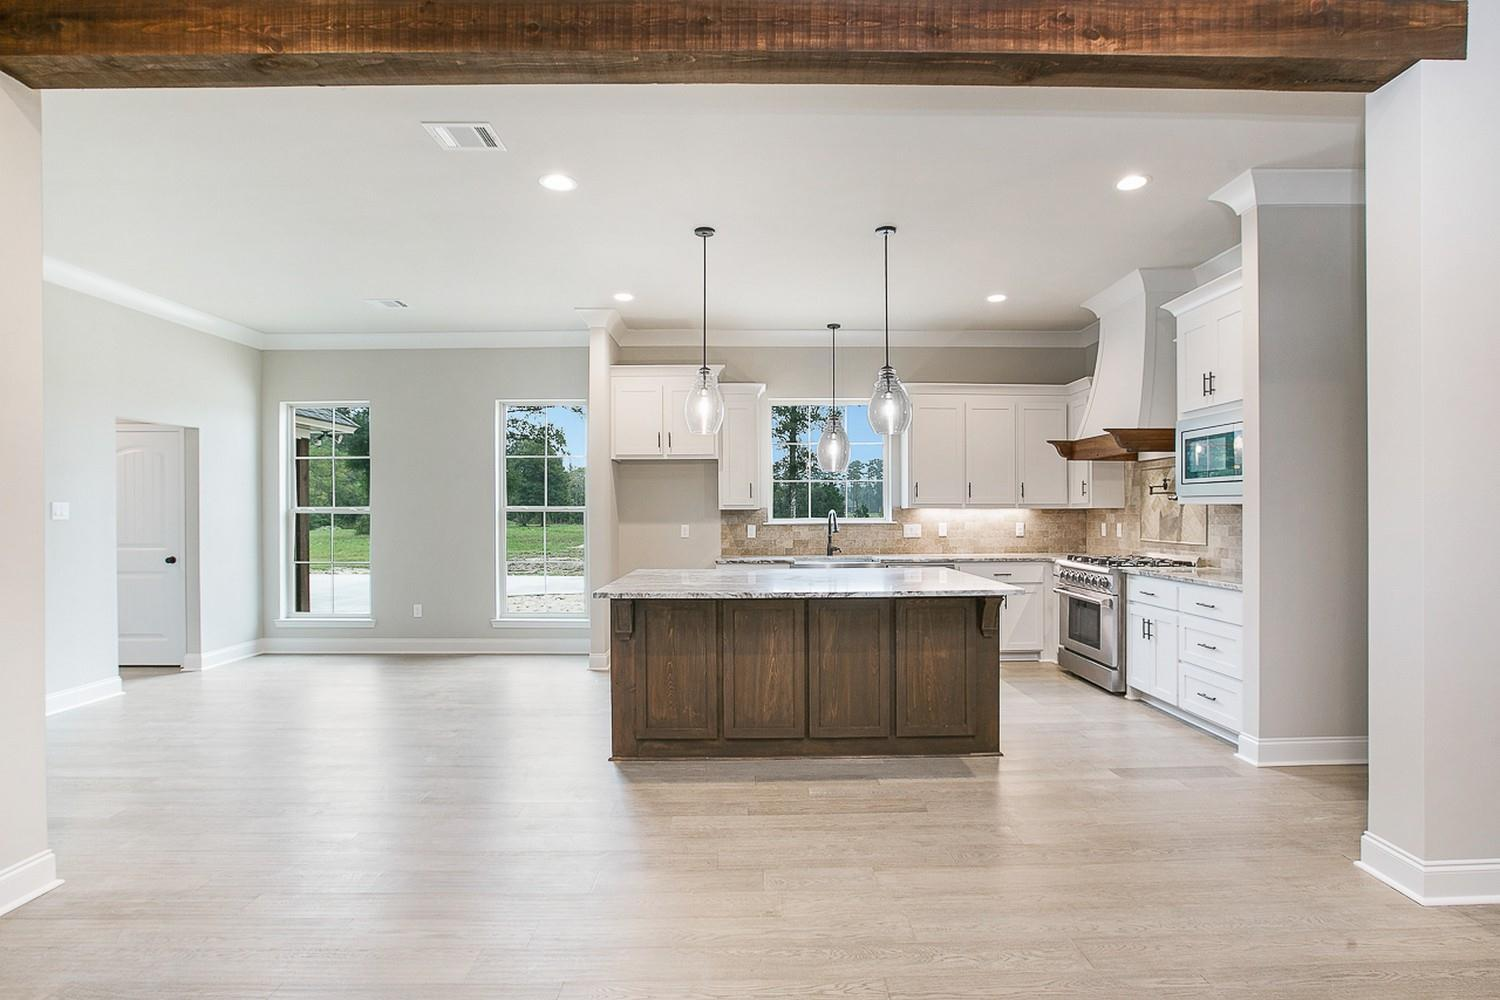 Kitchen featured in the Hudson I By Willie & Willie  in Baton Rouge, LA